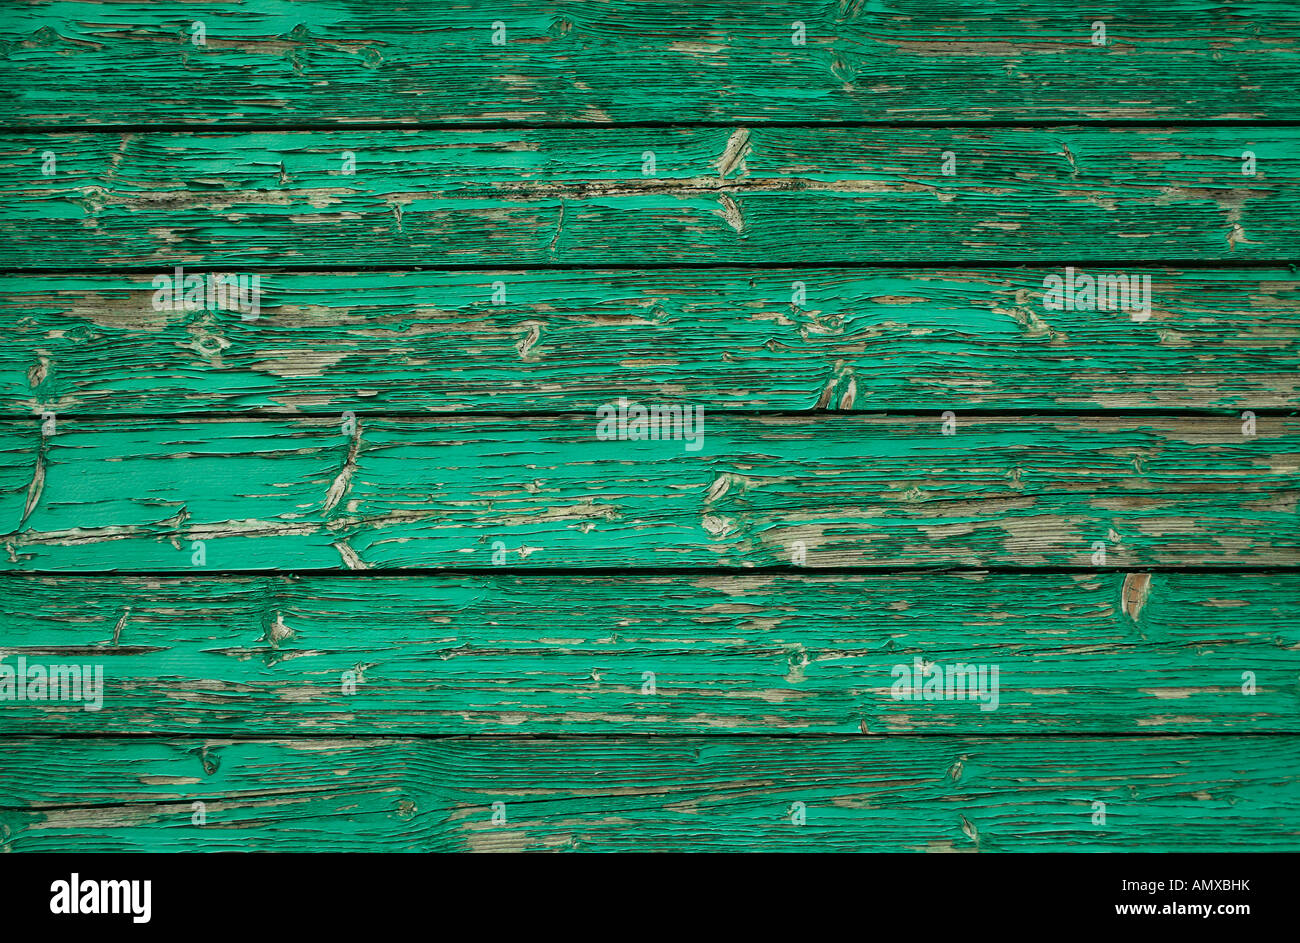 Green wooden wall  - Stock Image